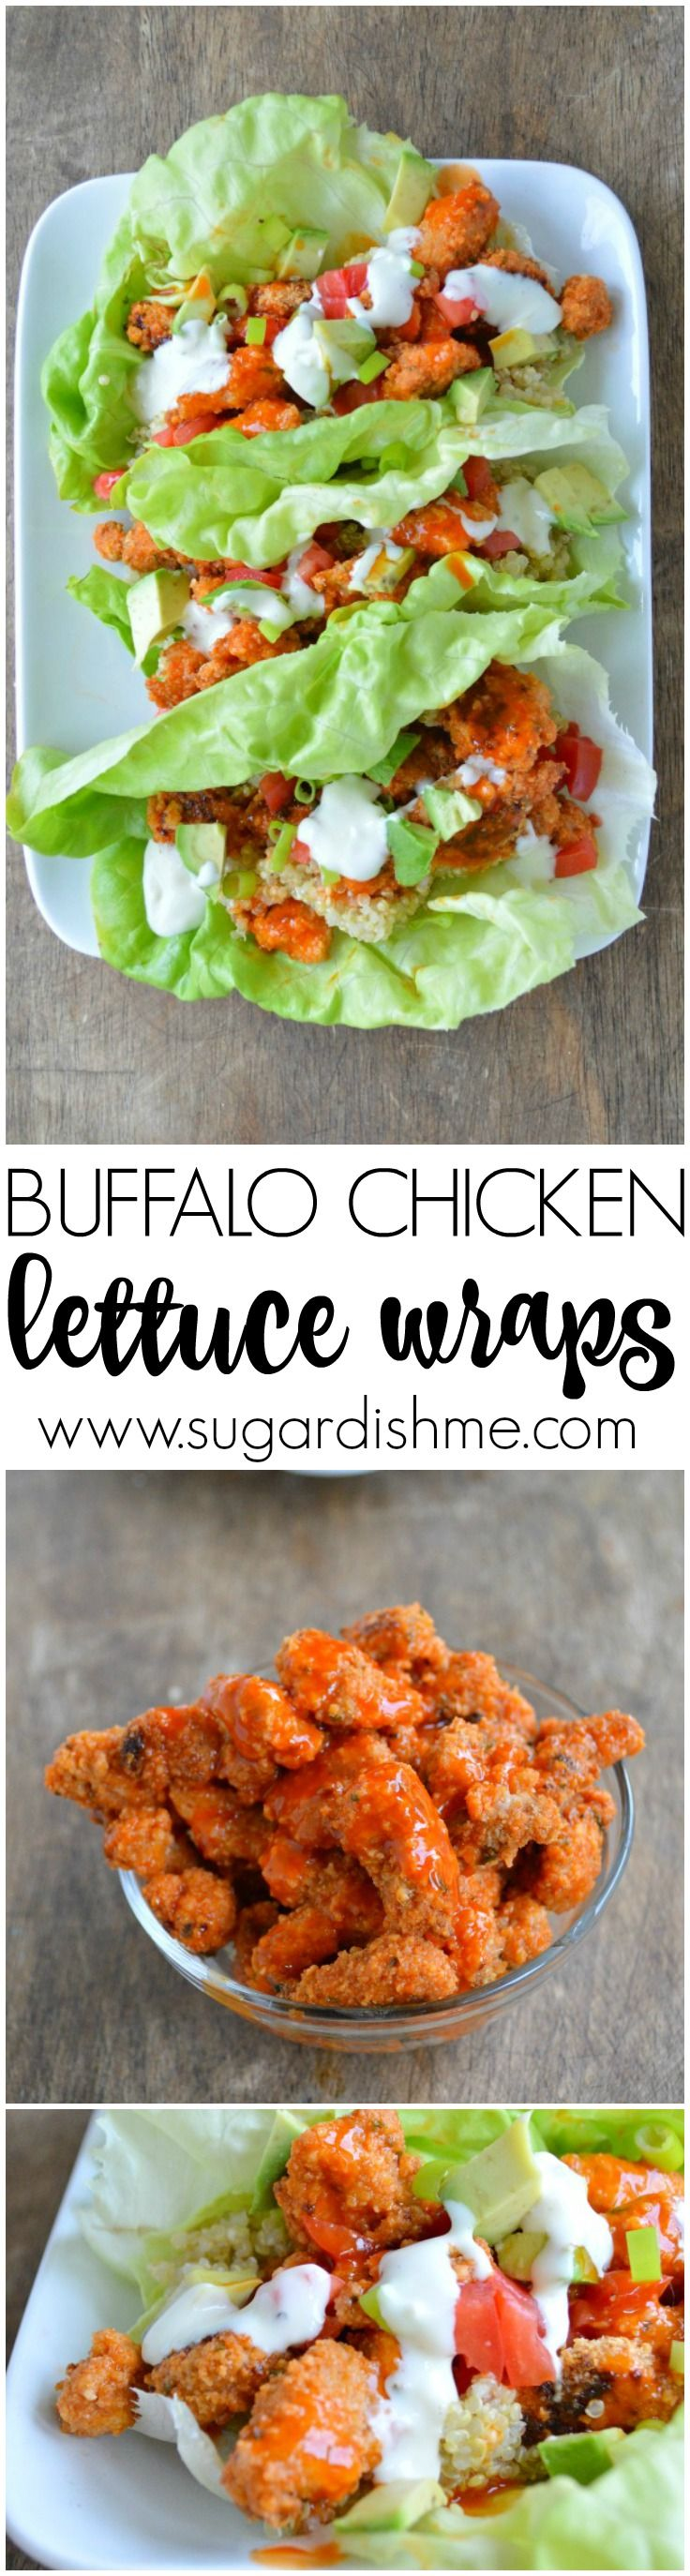 1565 best dinner recipes images on pinterest casserole recipes buffalo chicken lettuce wraps have been the top recipe on sugar dish me since 2014 healthy easy foodhealthy forumfinder Images